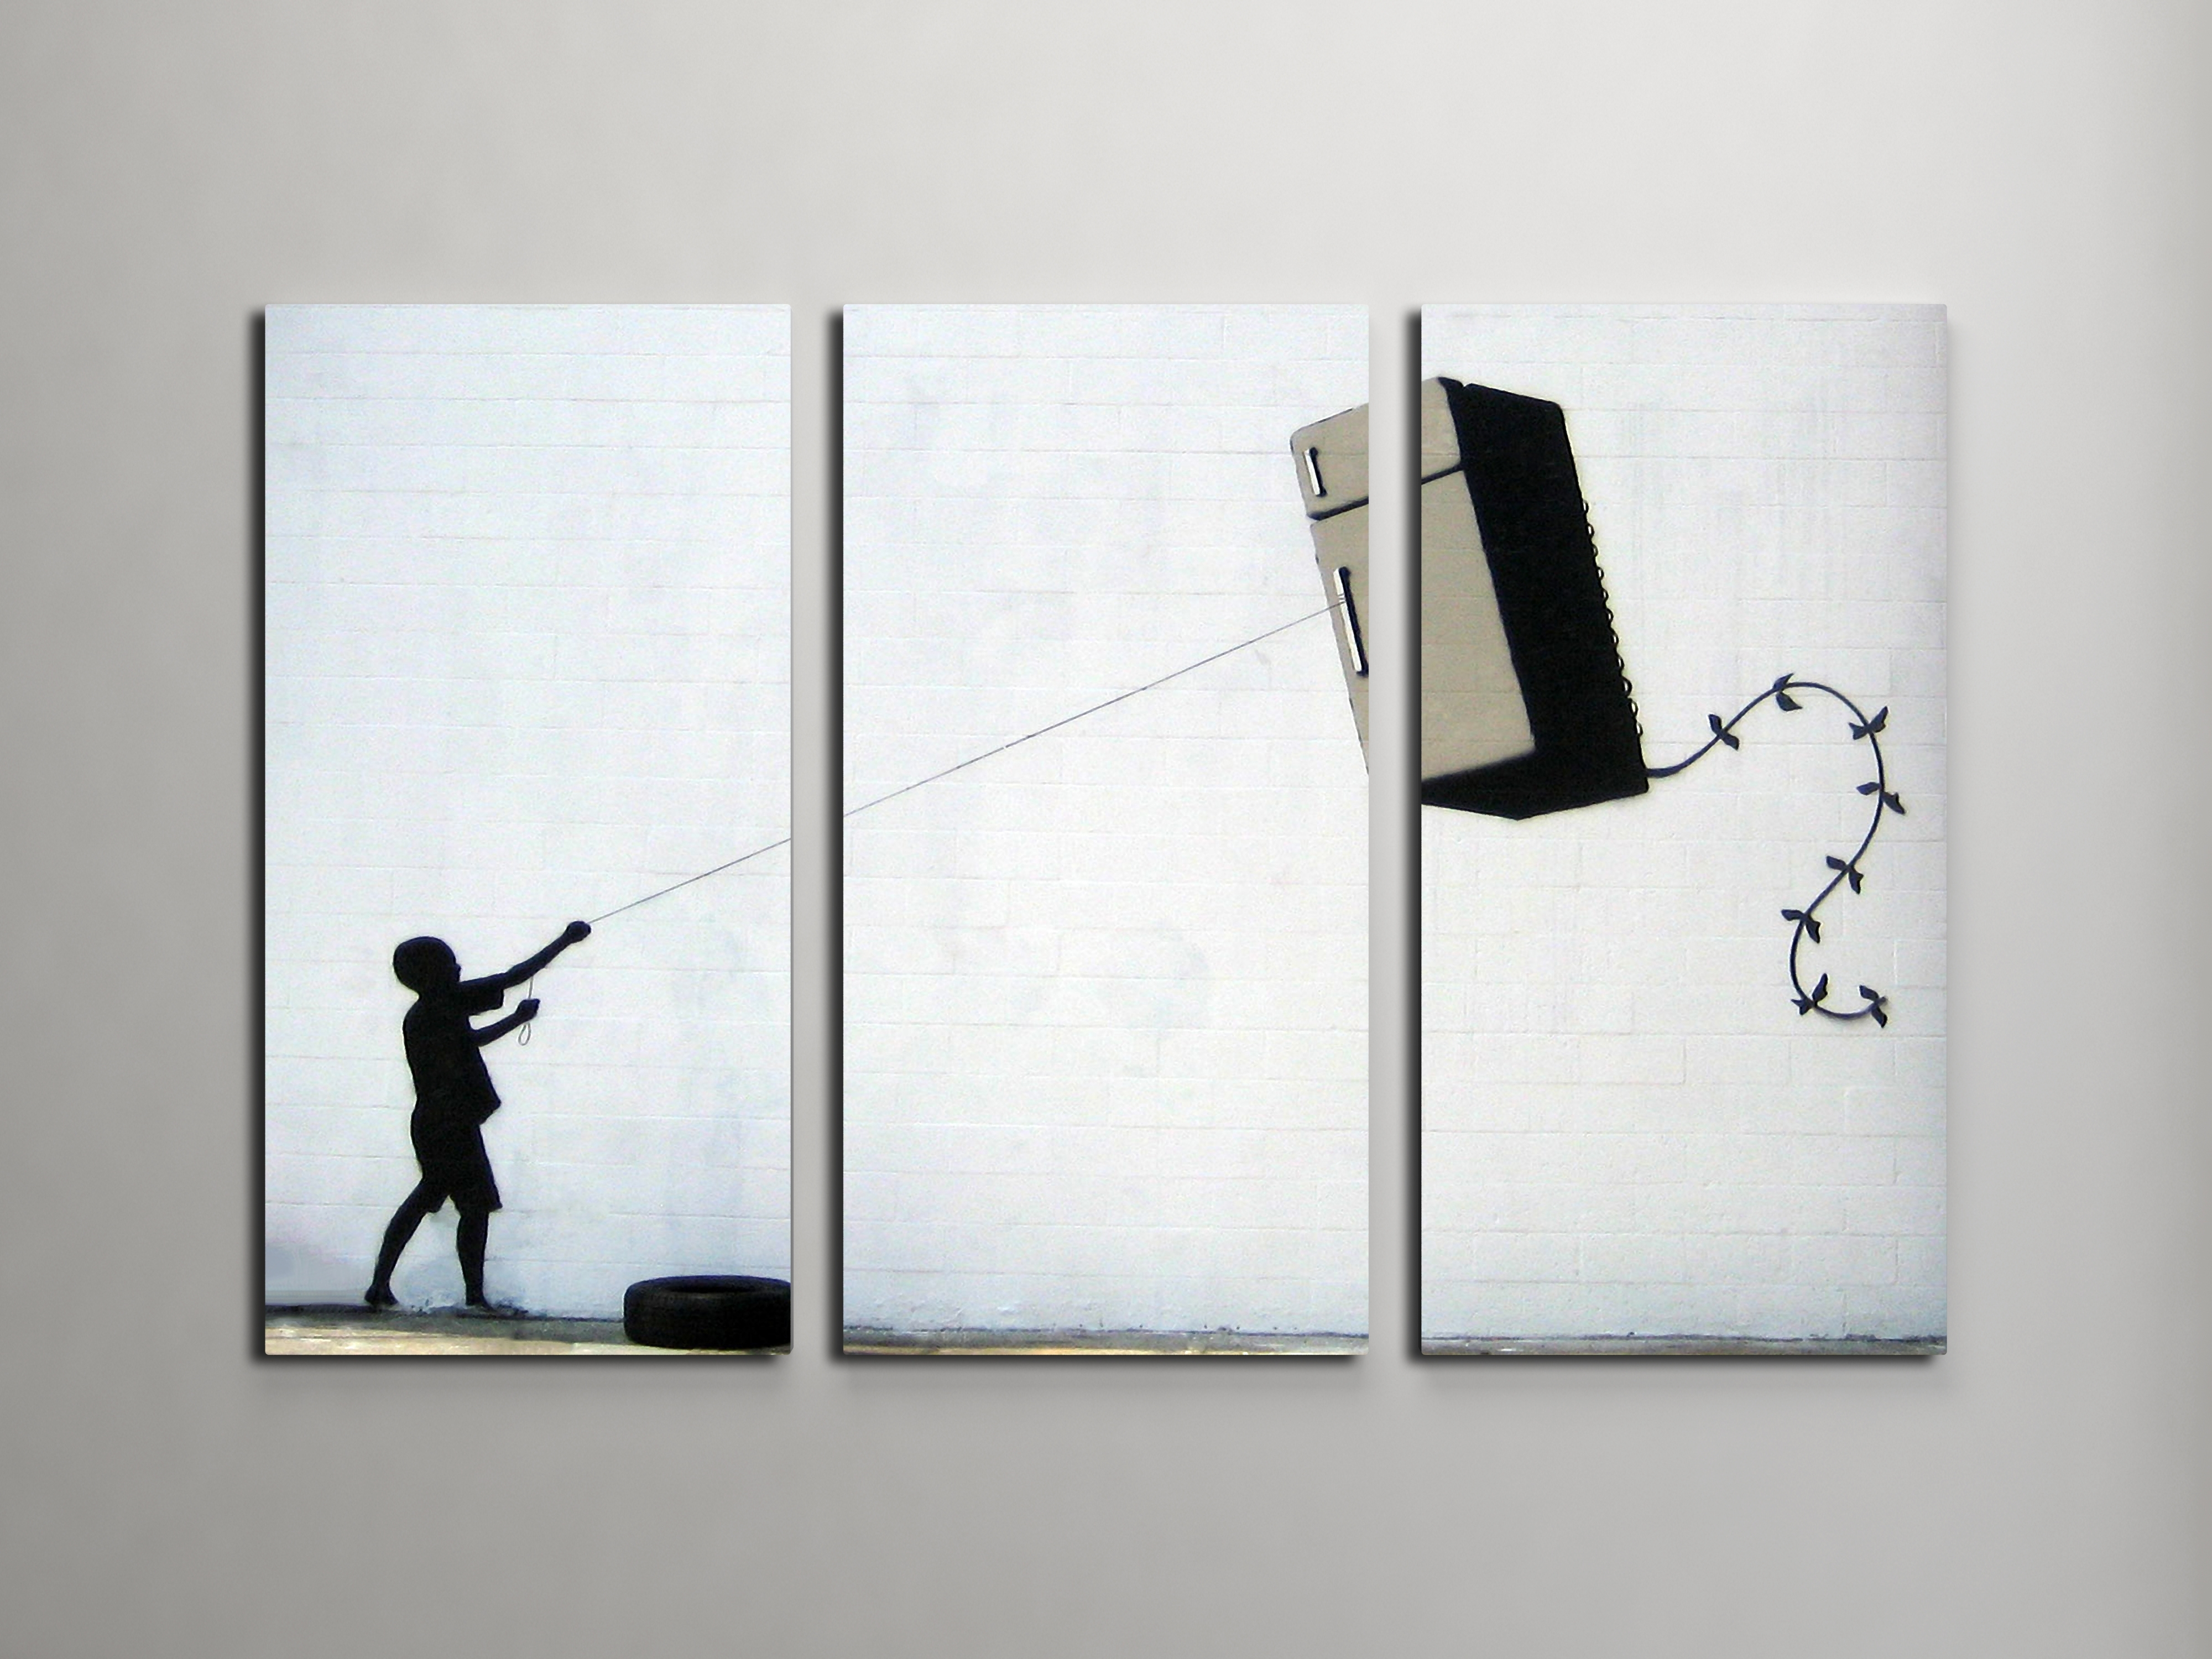 Banksy Fridge Kite Triptych Canvas Wall Art Within 2017 Triptych Wall Art (View 3 of 20)